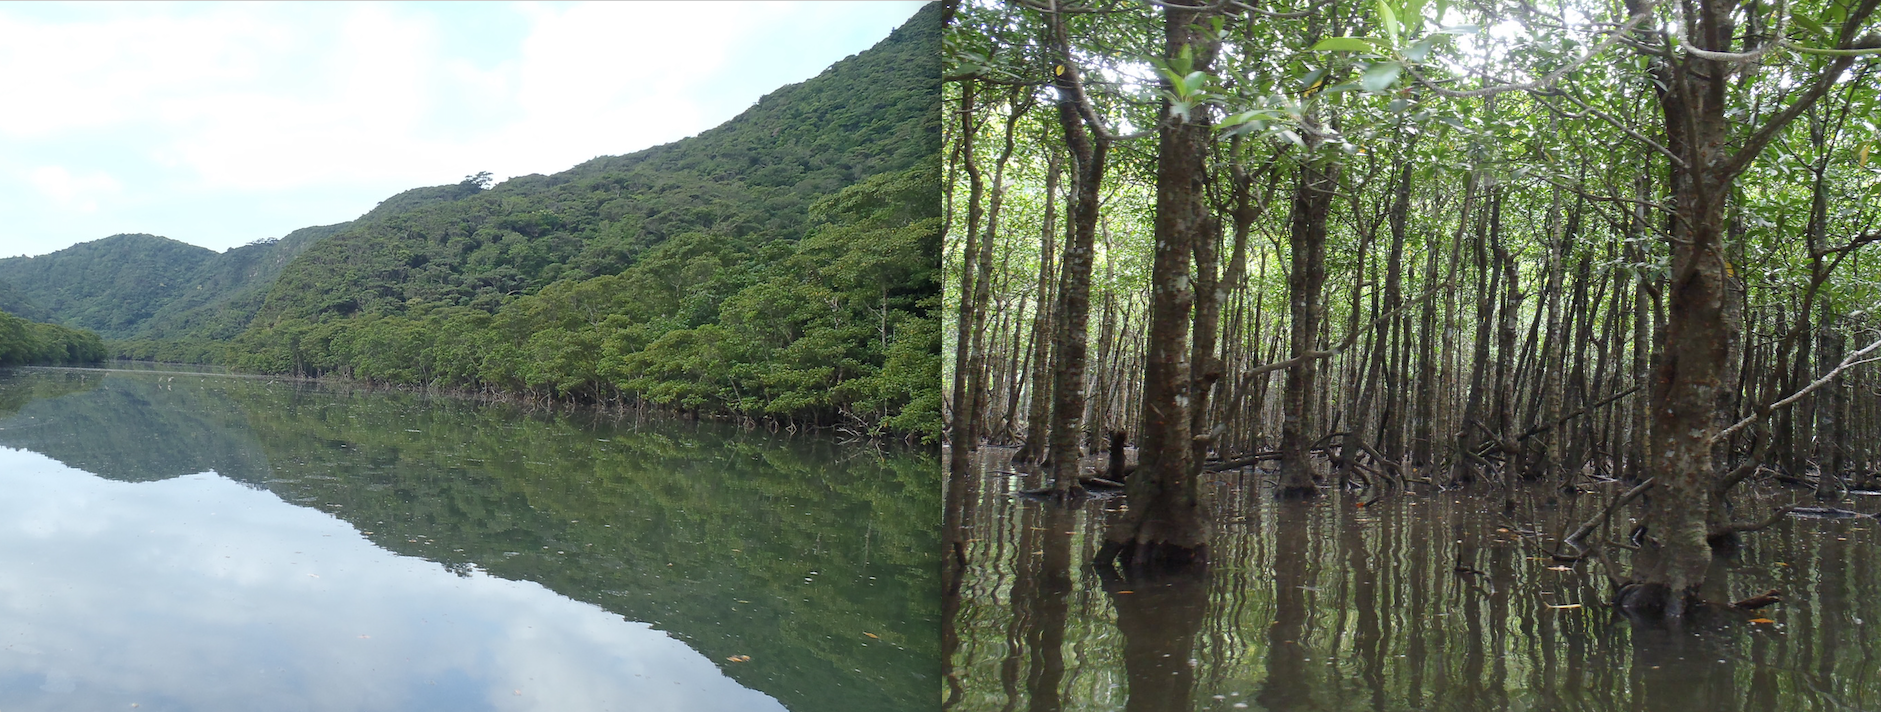 Two images side by side. On the left is a photograph of a dense forest at the edge of calm reflective water. On the right is a photo taken from within a forest densely packed with straight slender trees that have their bases submerged in calm reflective water